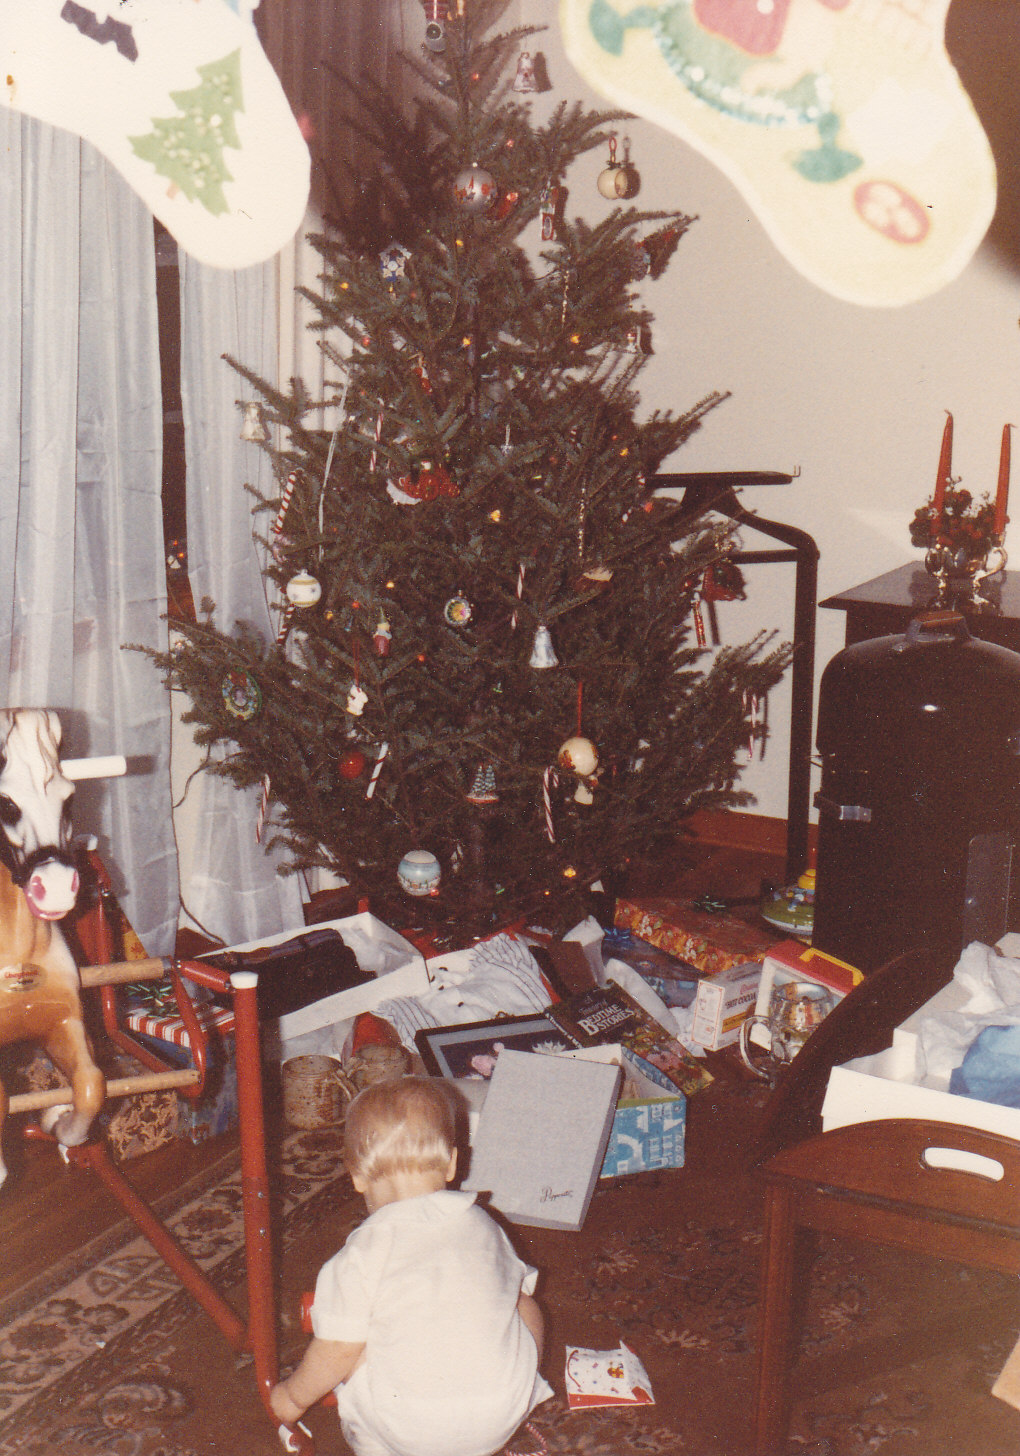 The First Year In Our Home I Hung Them From Casing Of Doorjamb Leading Into Living Room Just Barely Visible This Old Photo